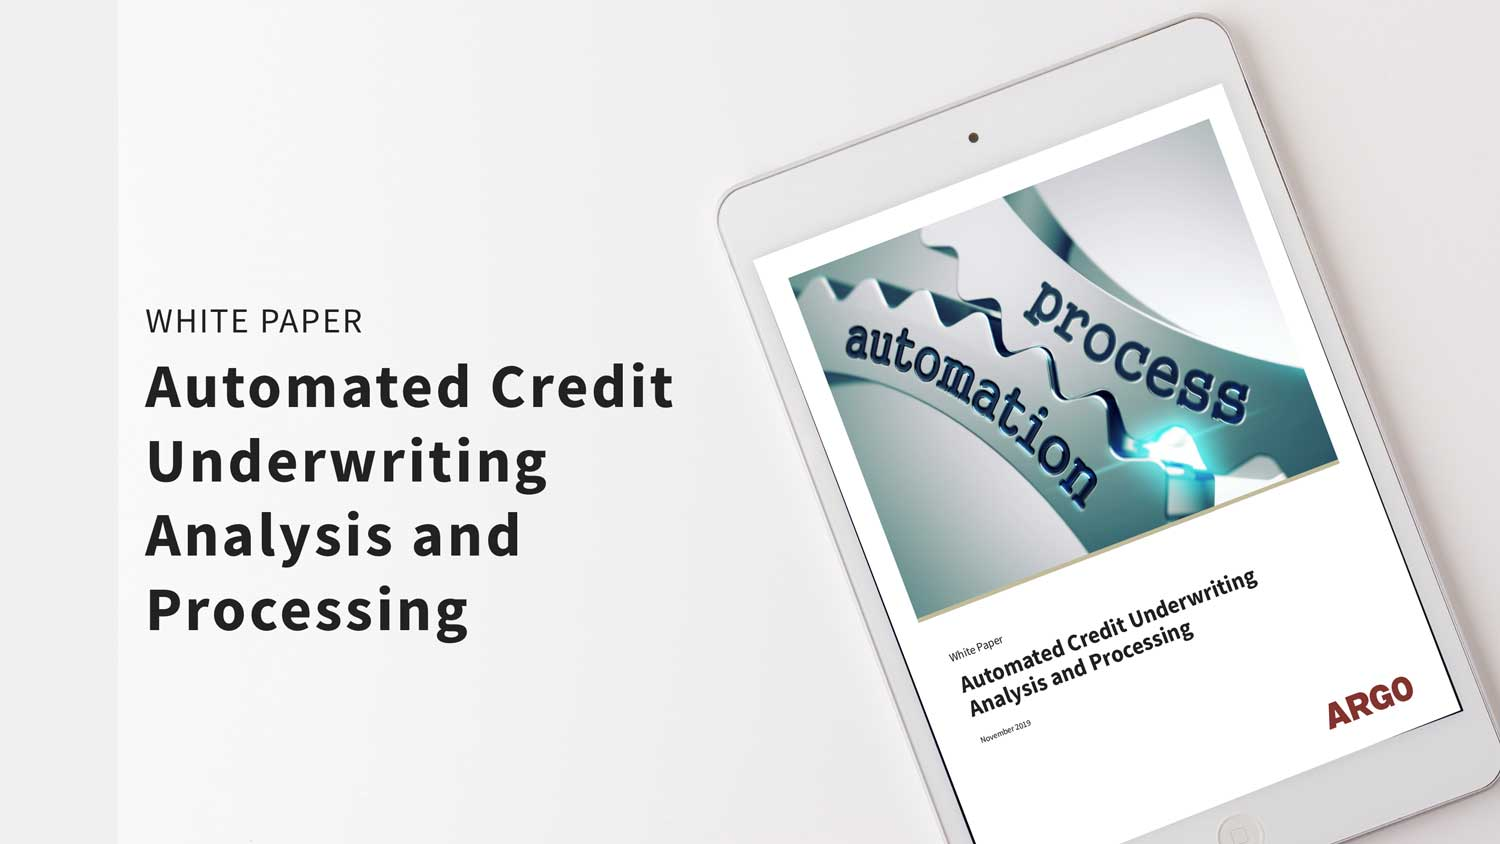 ARGO-white-paper-Automated-Credit-Underwriting-Analysis-Processing